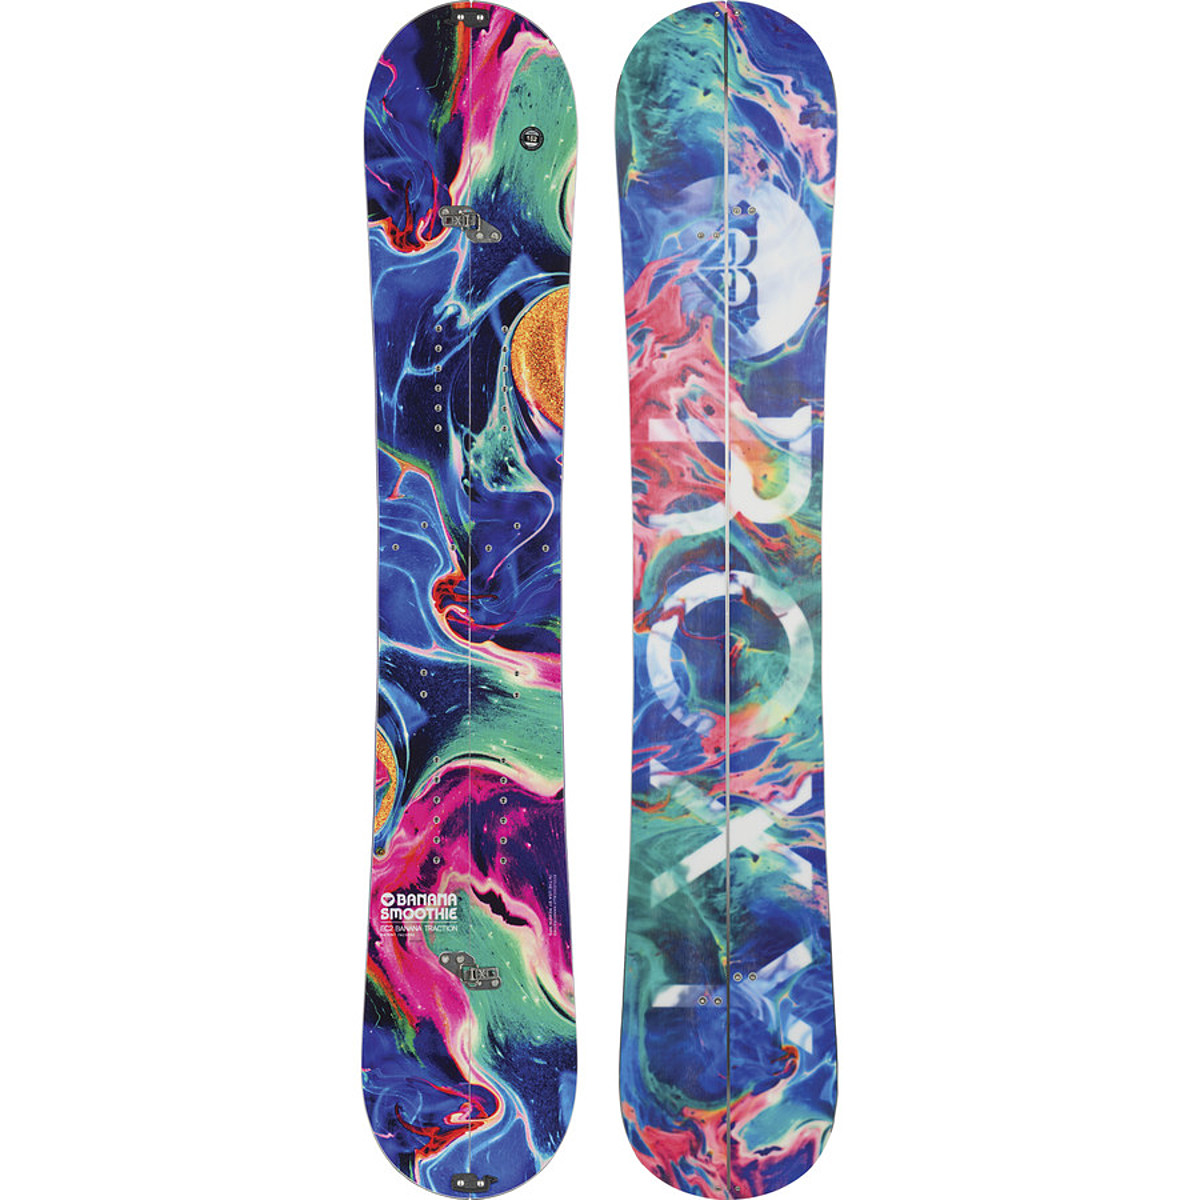 photo of a Roxy ski/snowshoe product